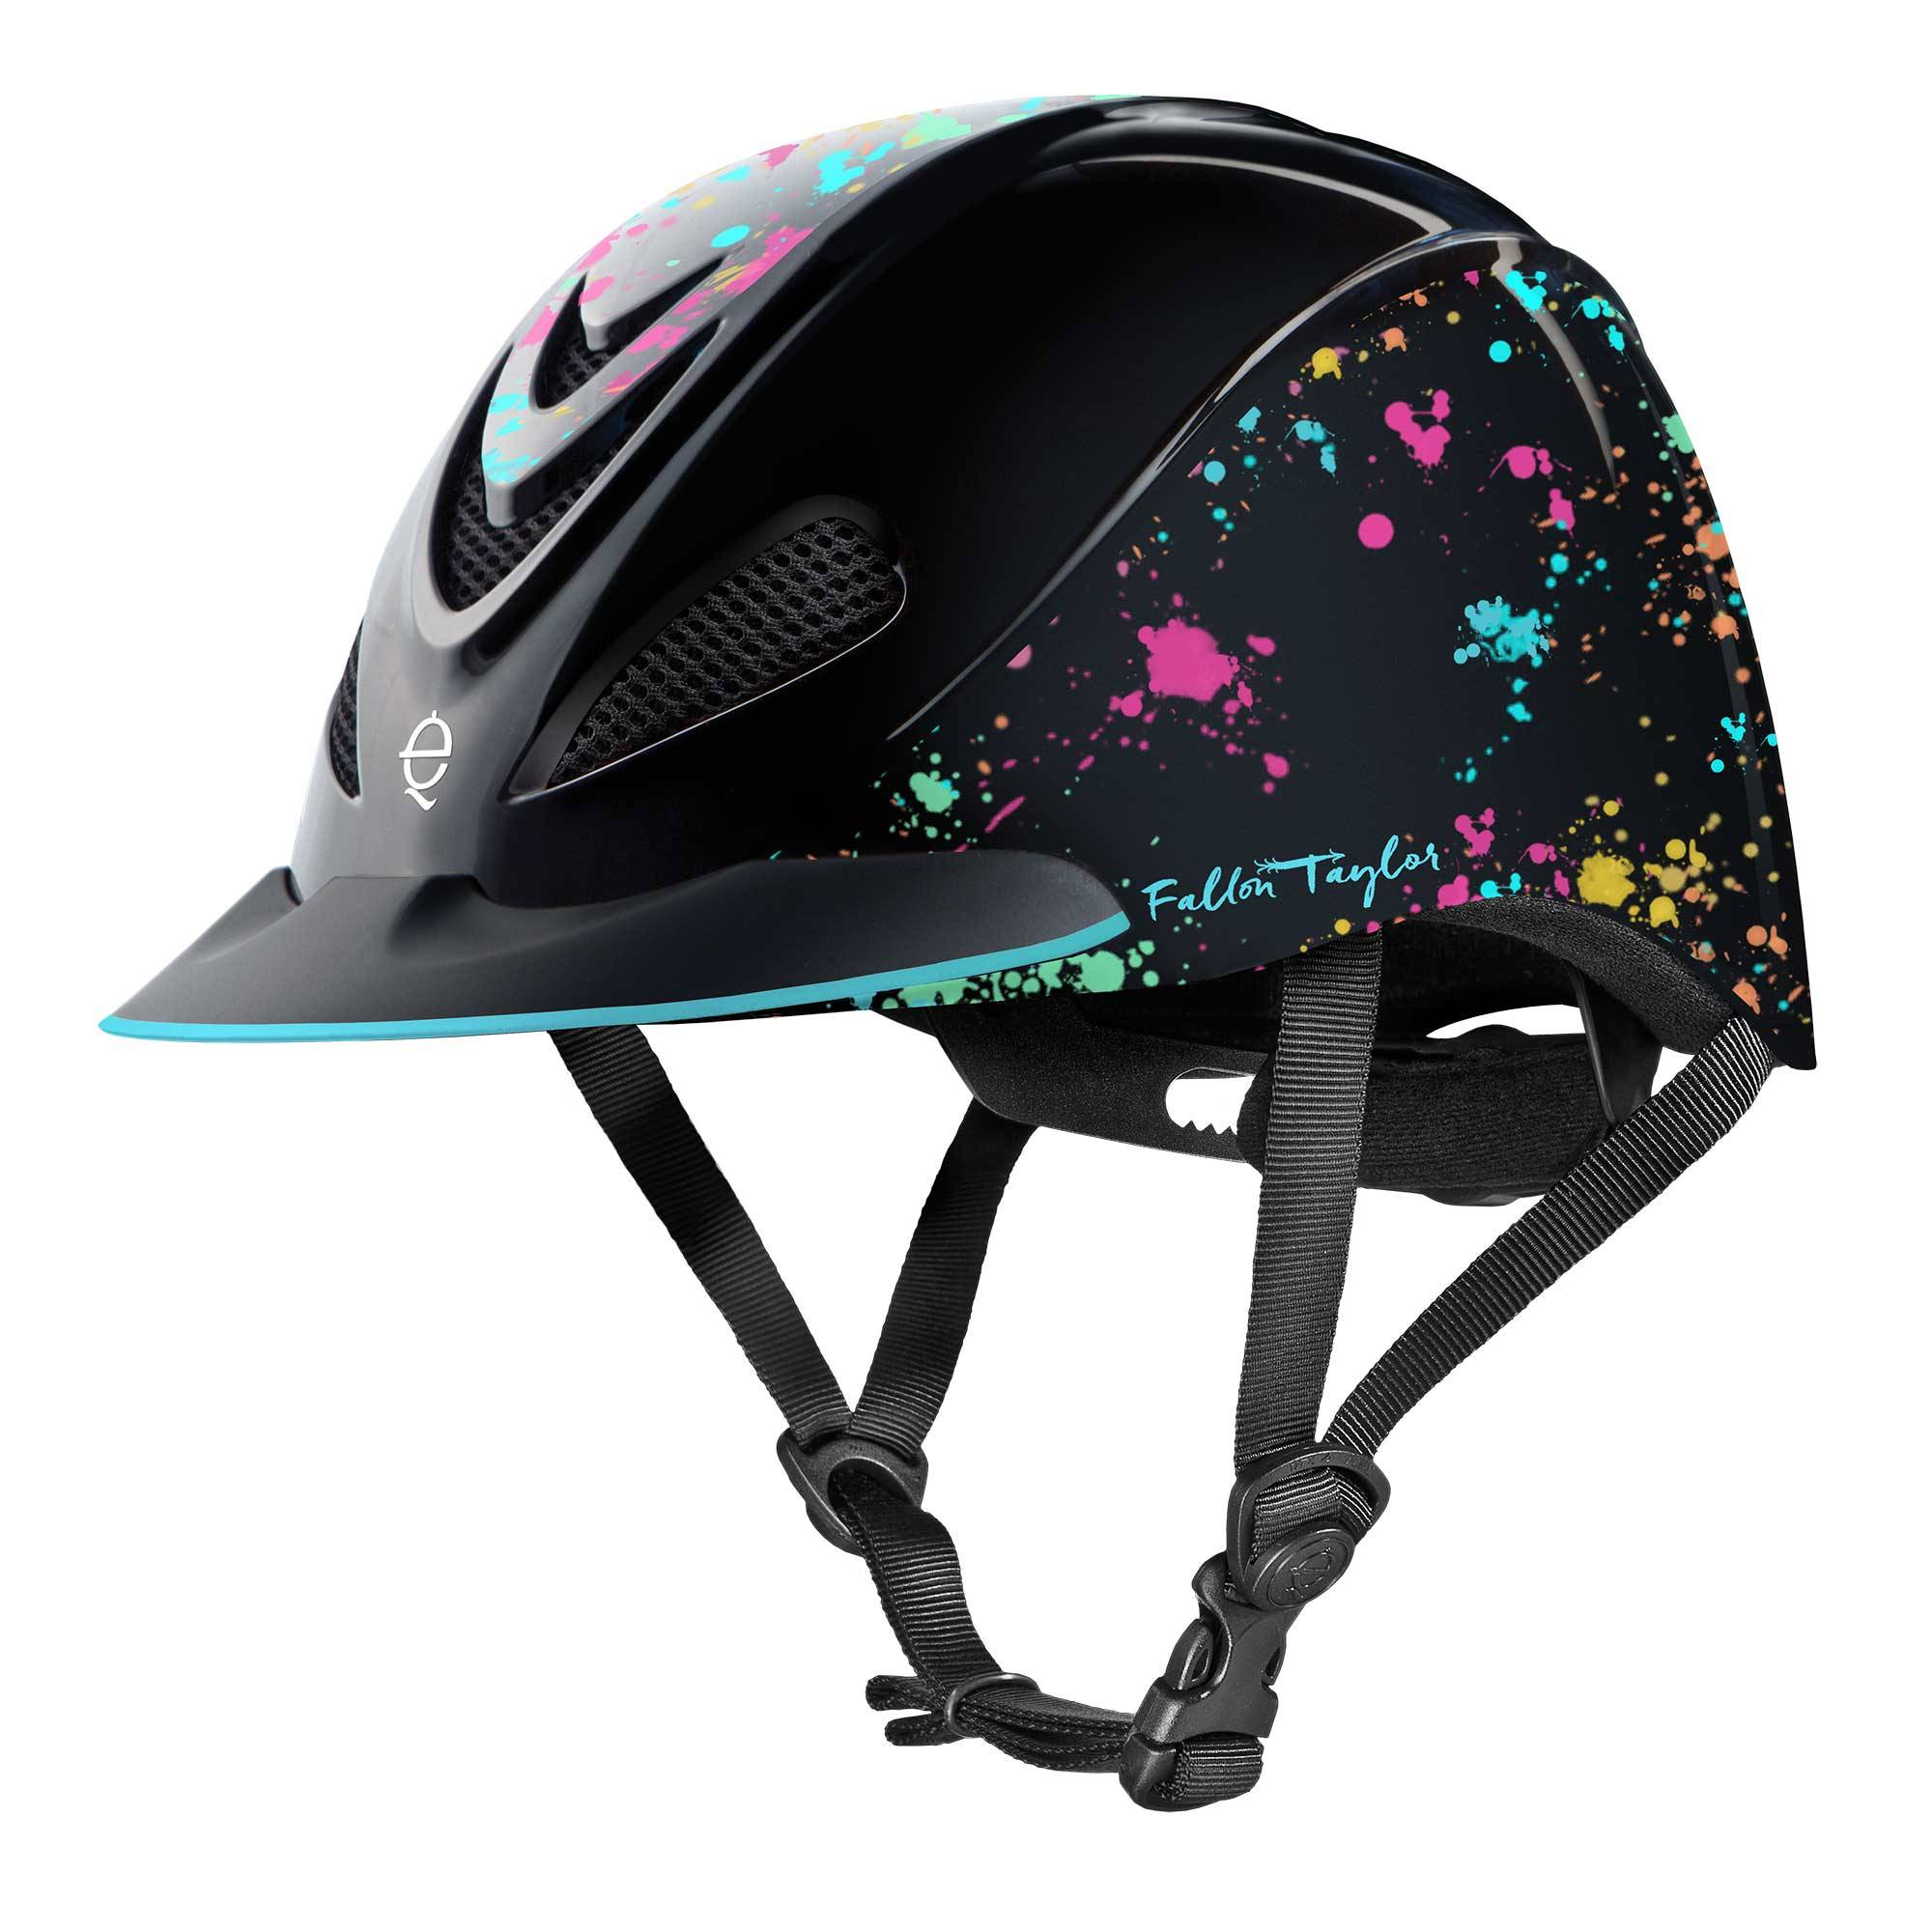 Troxel Fallon Taylor Helmet - Rave Splatter - FREE Cap with Purchase